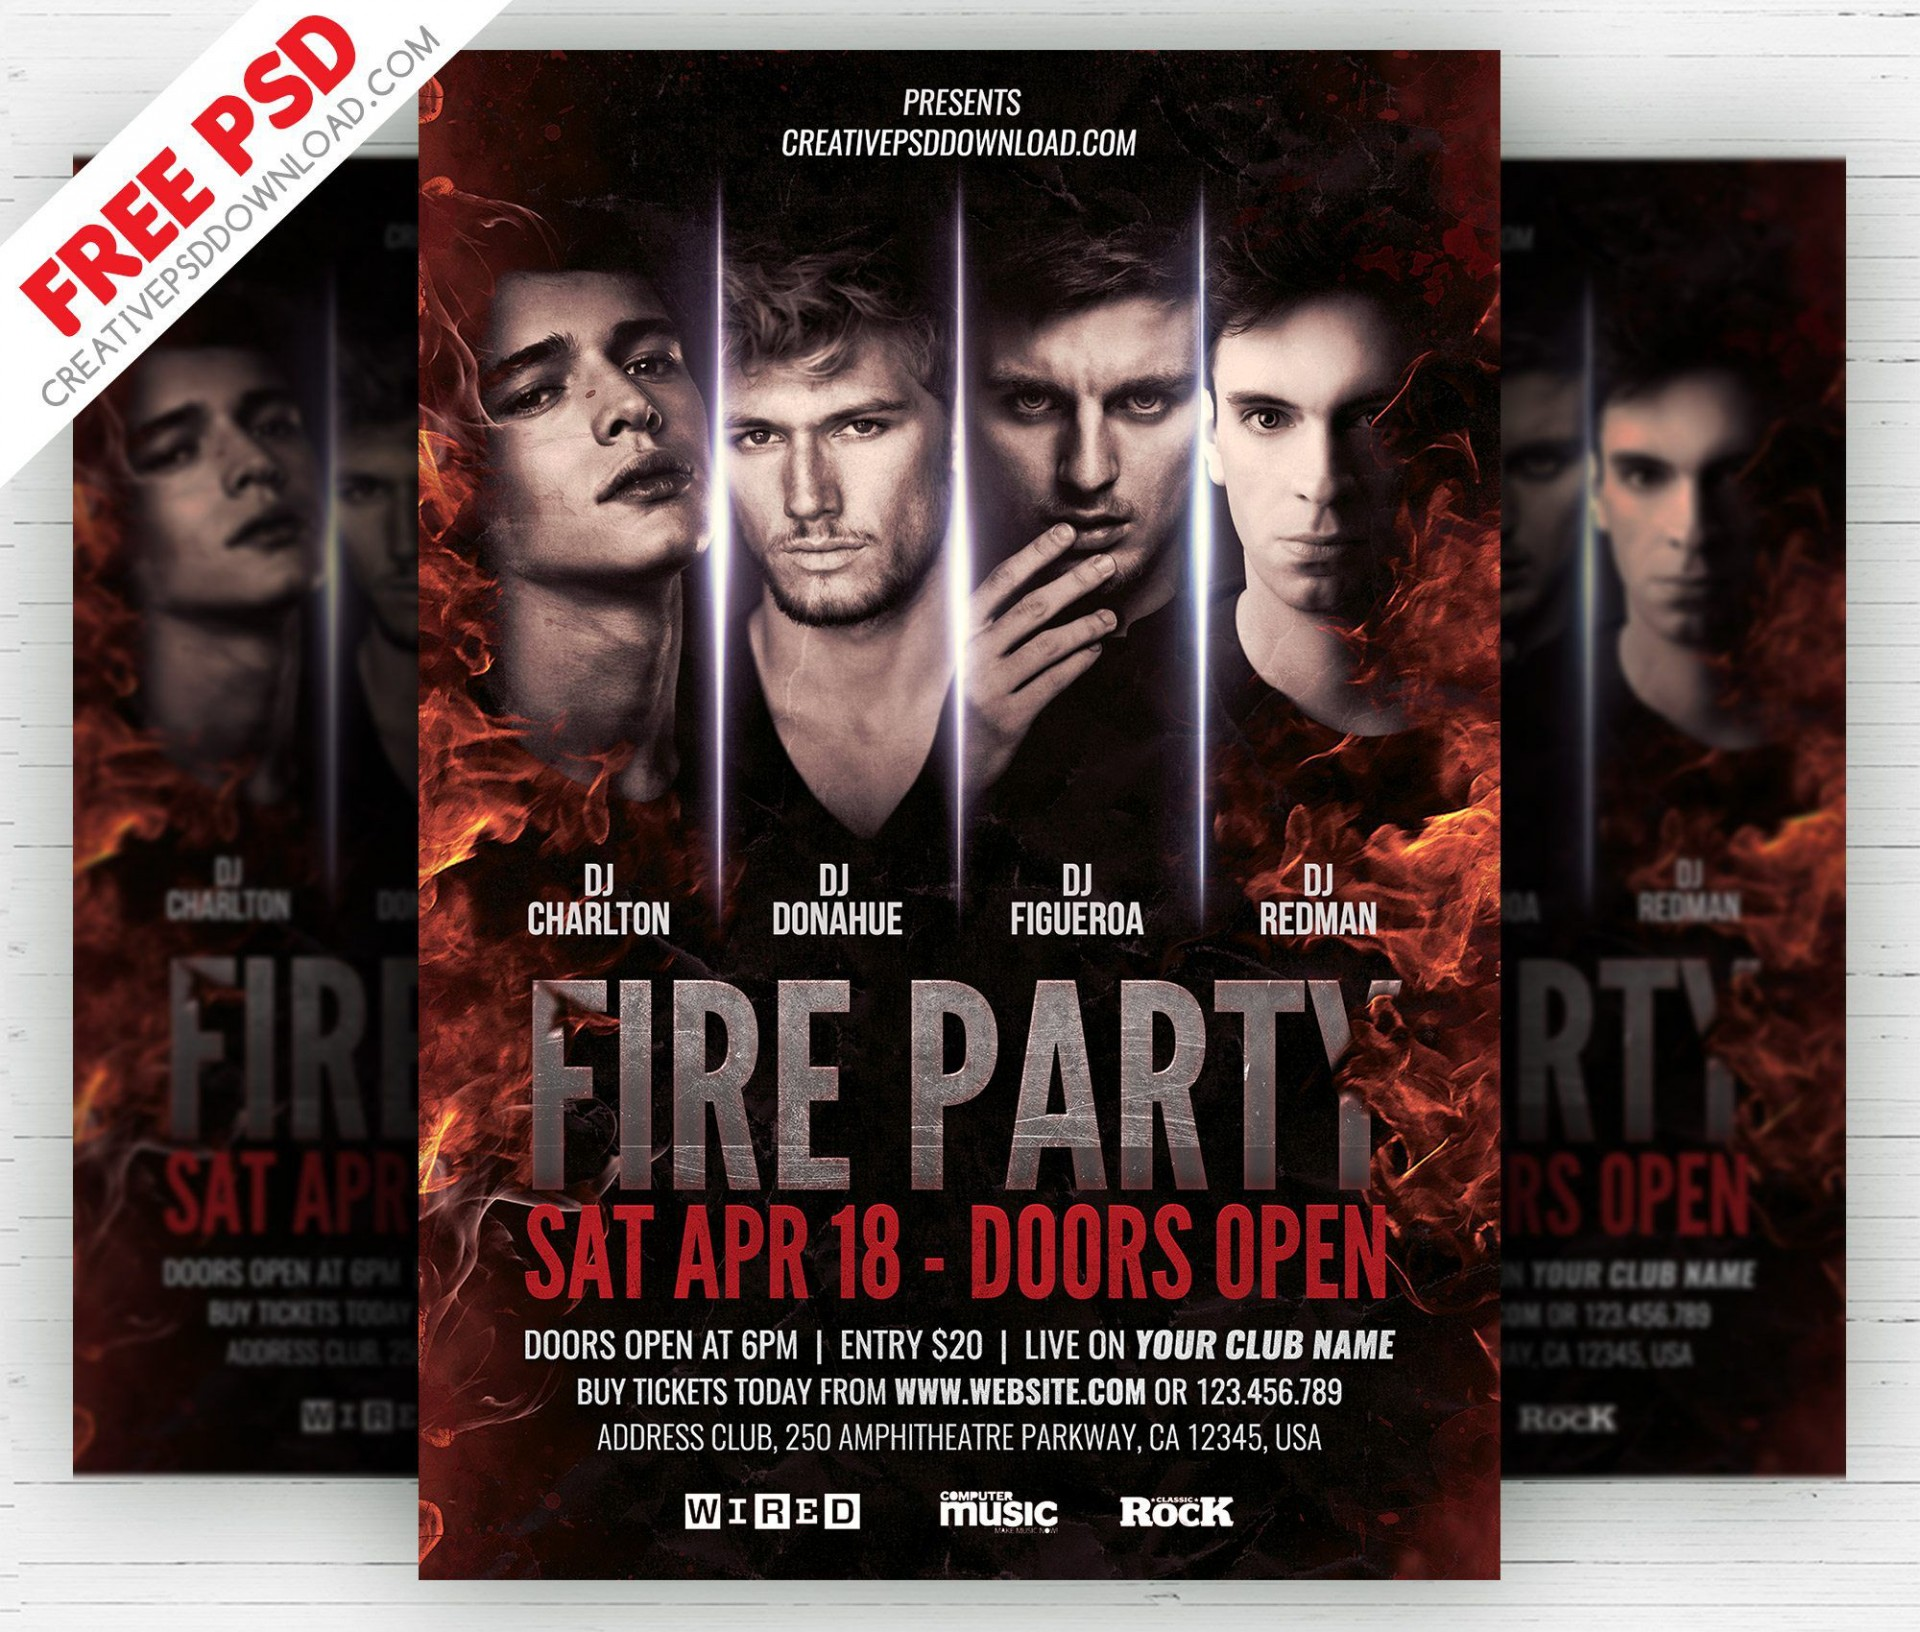 006 Fearsome Free Party Flyer Psd Template Download Highest Quality  - Neon Glow1920